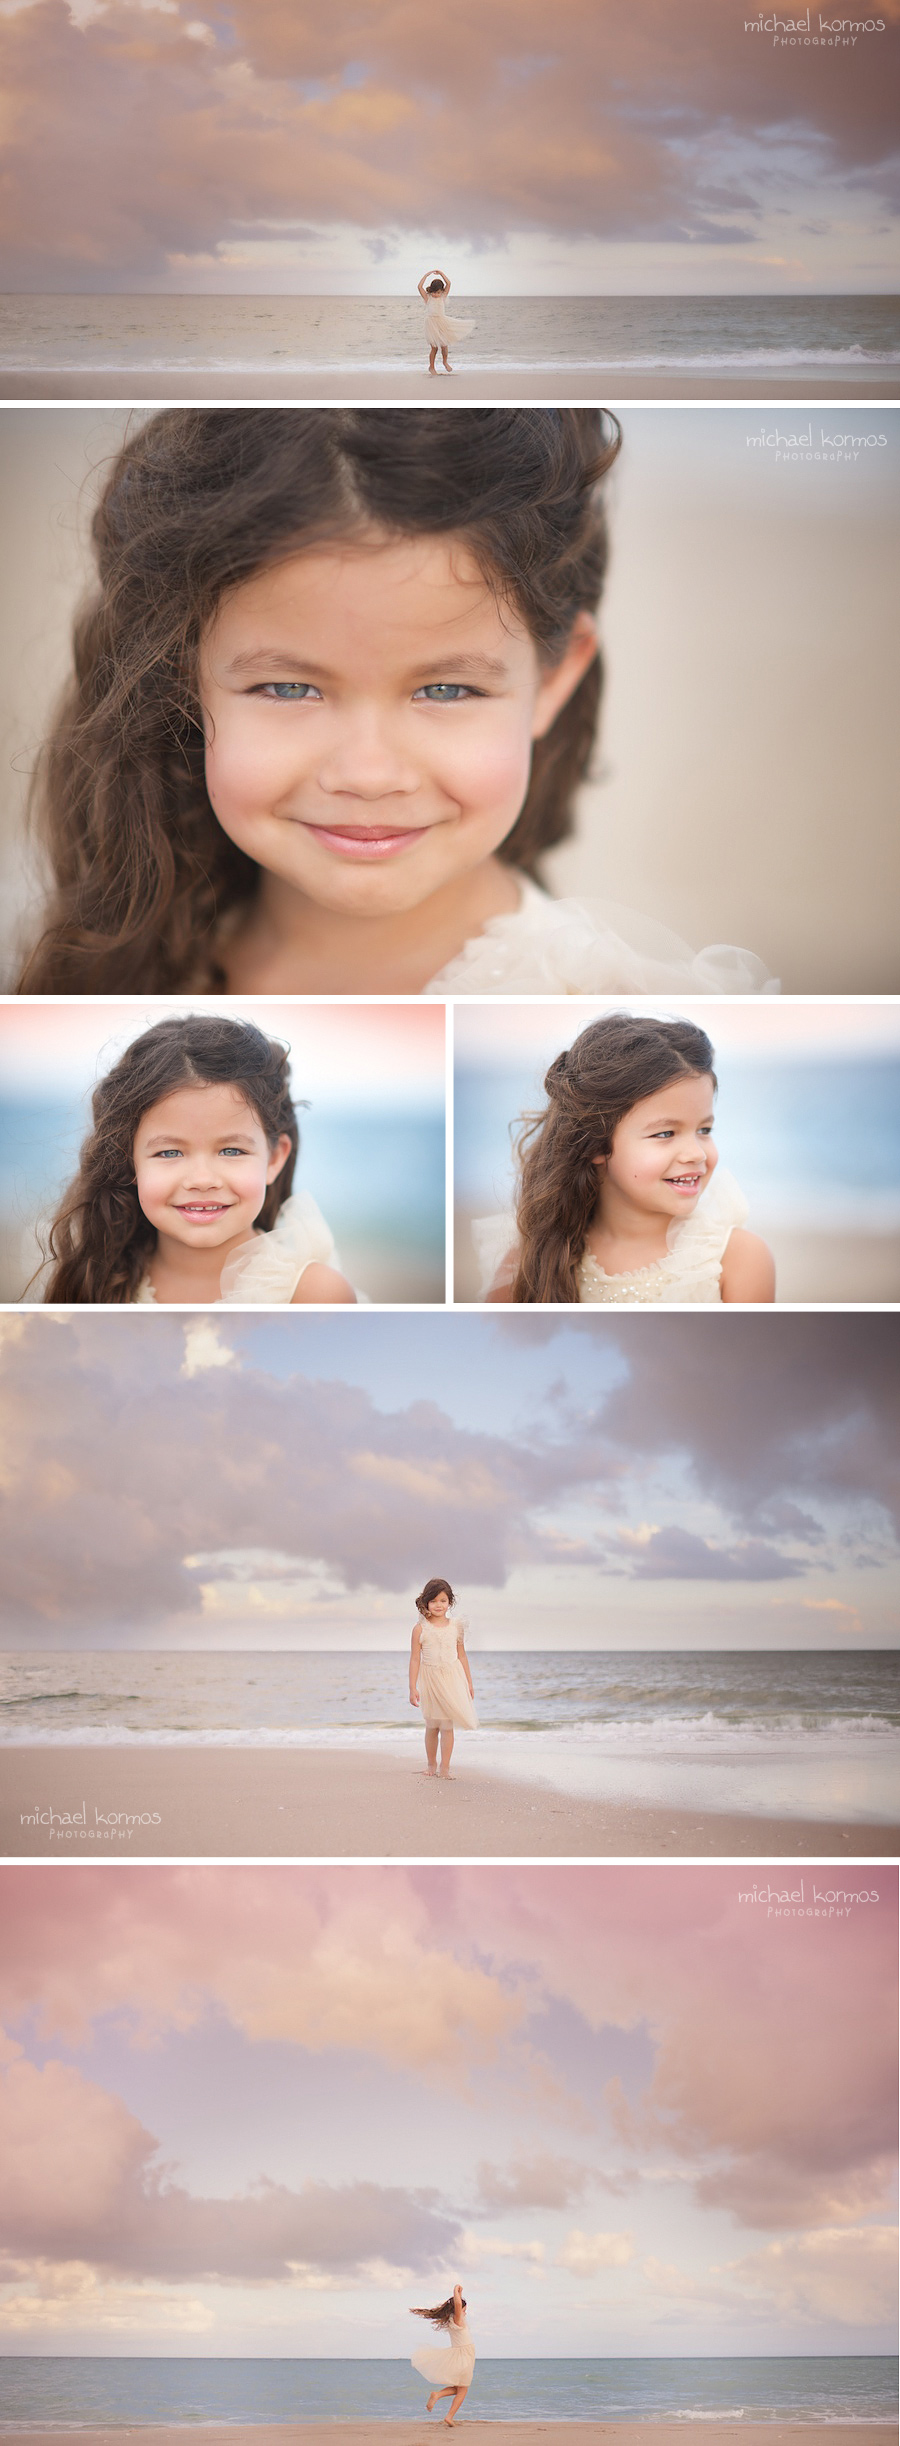 Photographer Michael Kormos captures lifestyle child model photography of three 6-year old girls during a fun experience at the beach